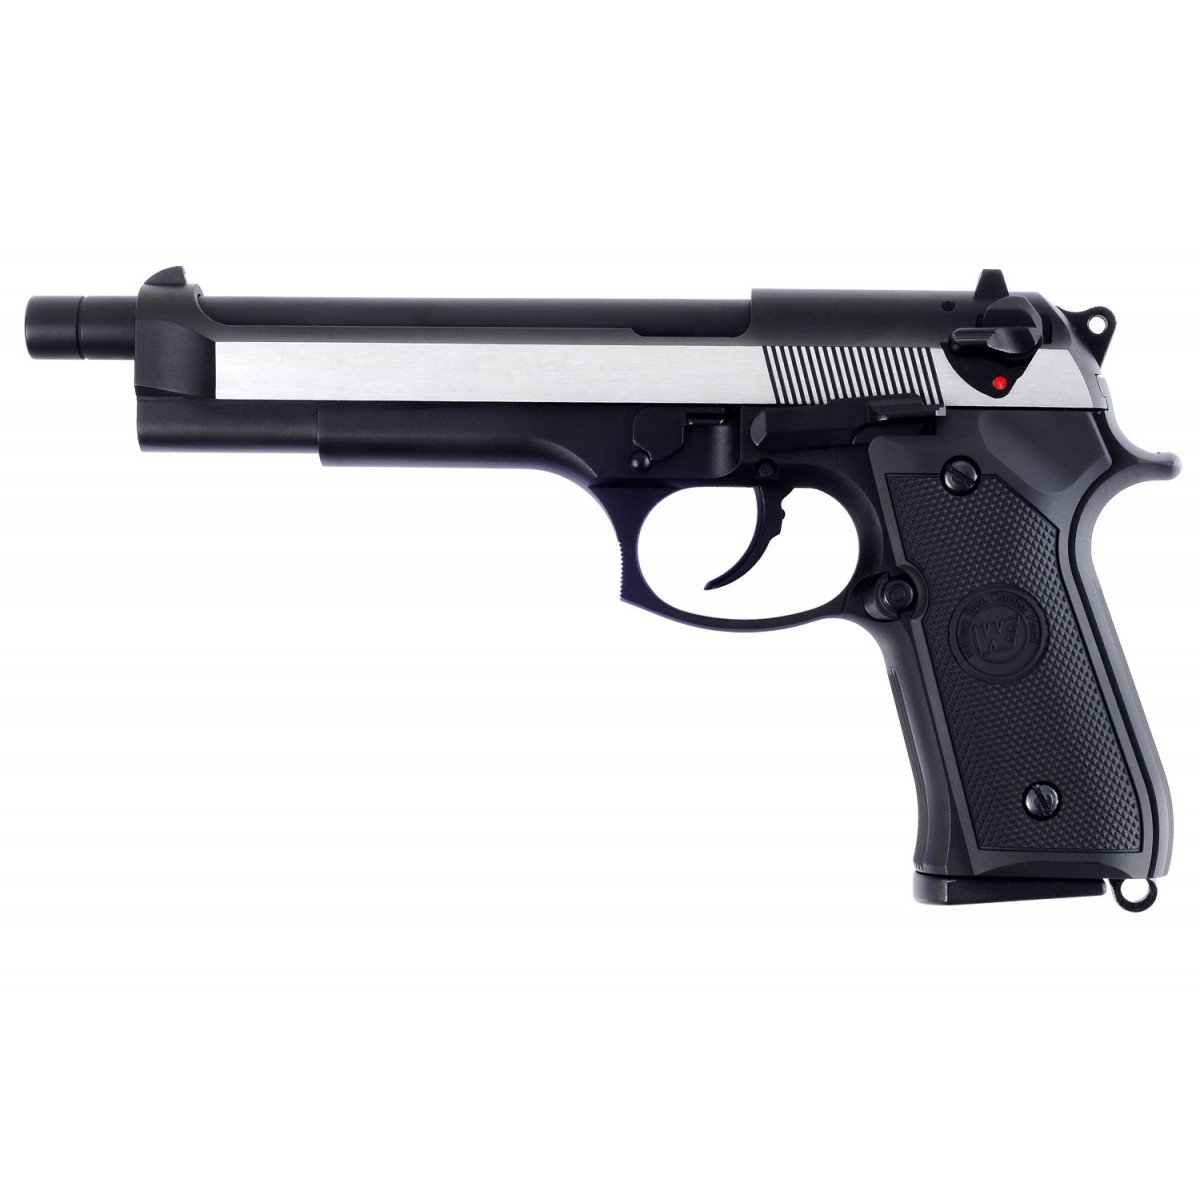 WE Beretta M92 L Full Metal GBB Pistol -2 Tone, Black Grip